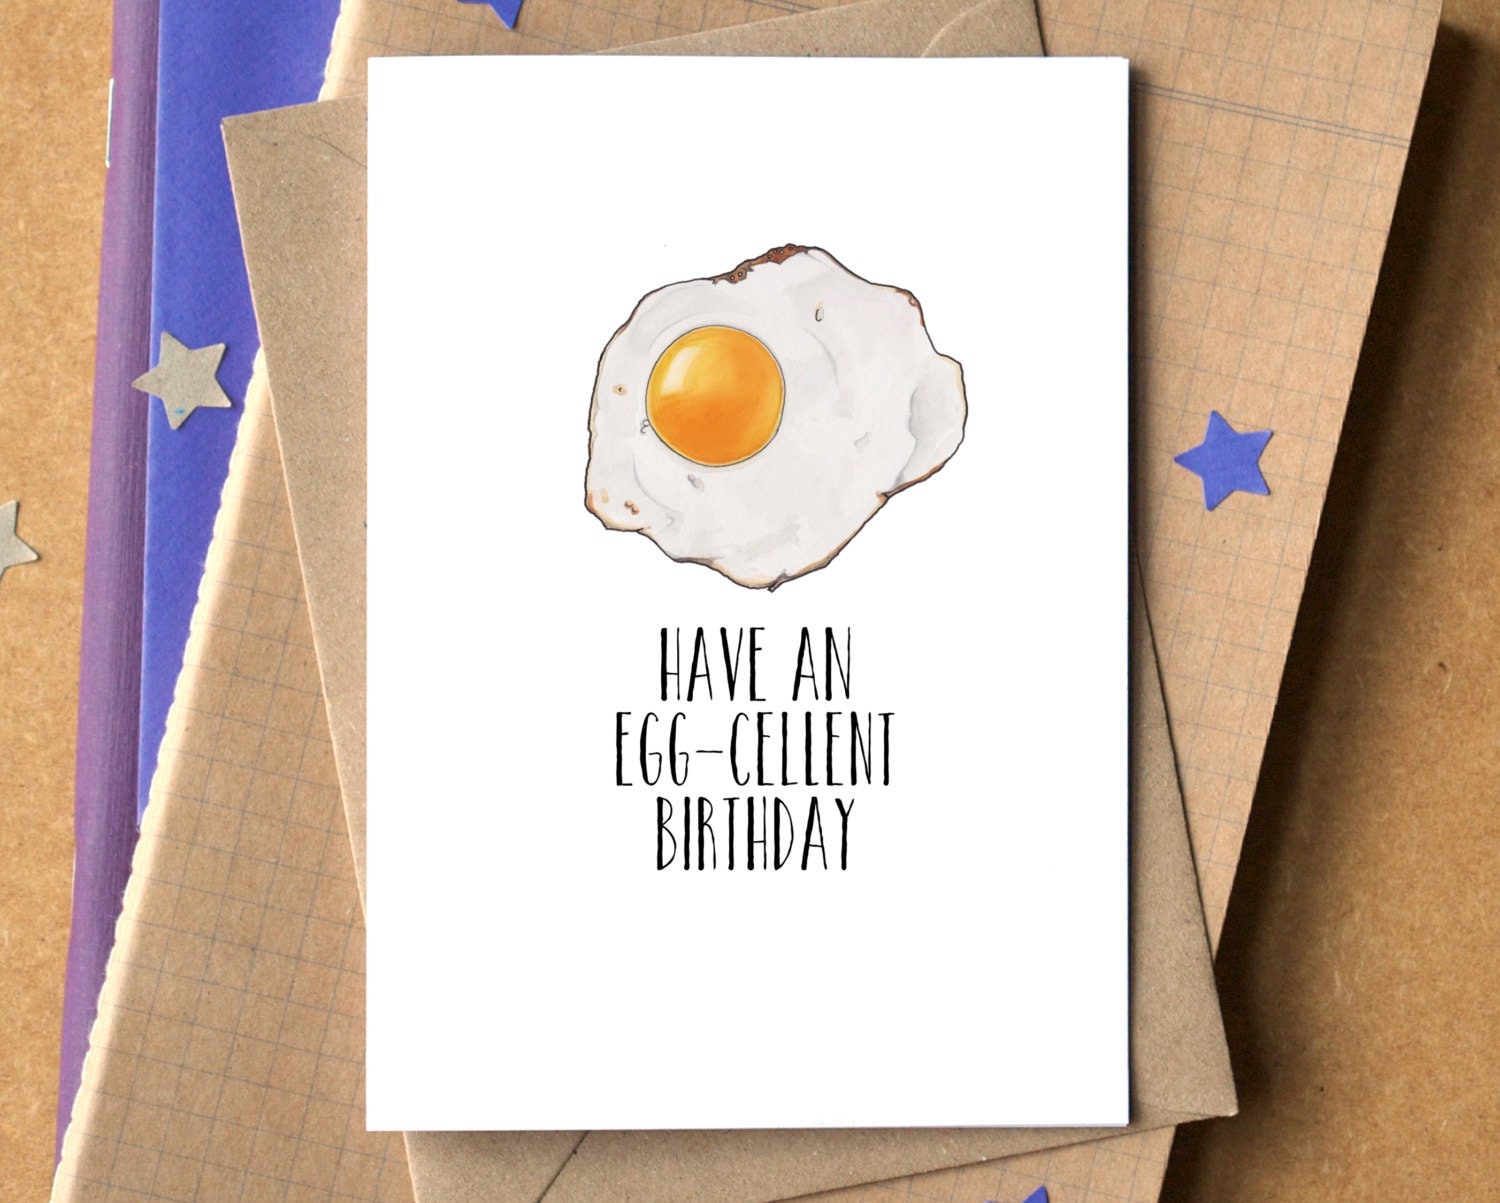 Cool Birthday Cards For Dad ~ Have an egg cellent birthday card funny birthday card